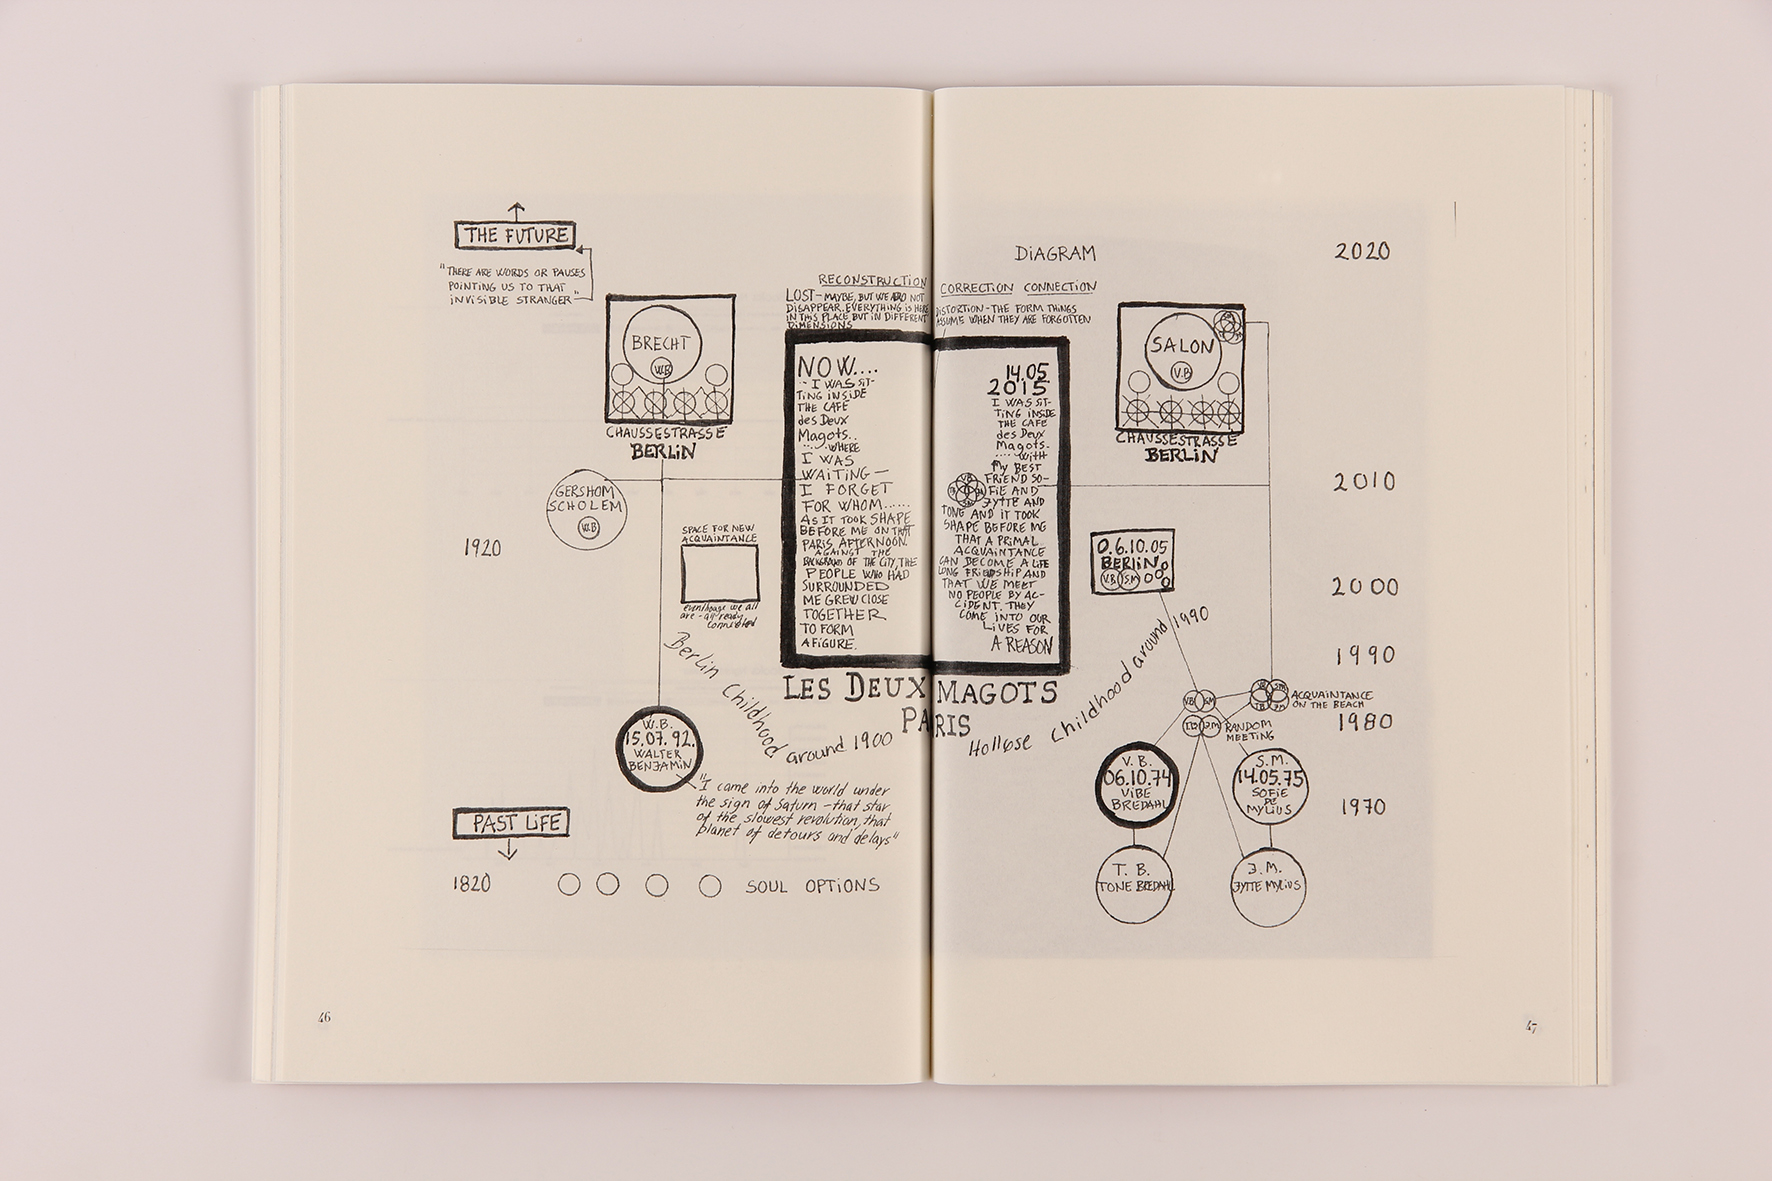 Browse By Department Sheffield Hallam University Research Archive Diagramoftheeye23 Diagram Picture Clarke Helen And Kivland Sharon Eds 2017 The Lost Diagrams Of Walter Benjamin London Ma Bibliothque